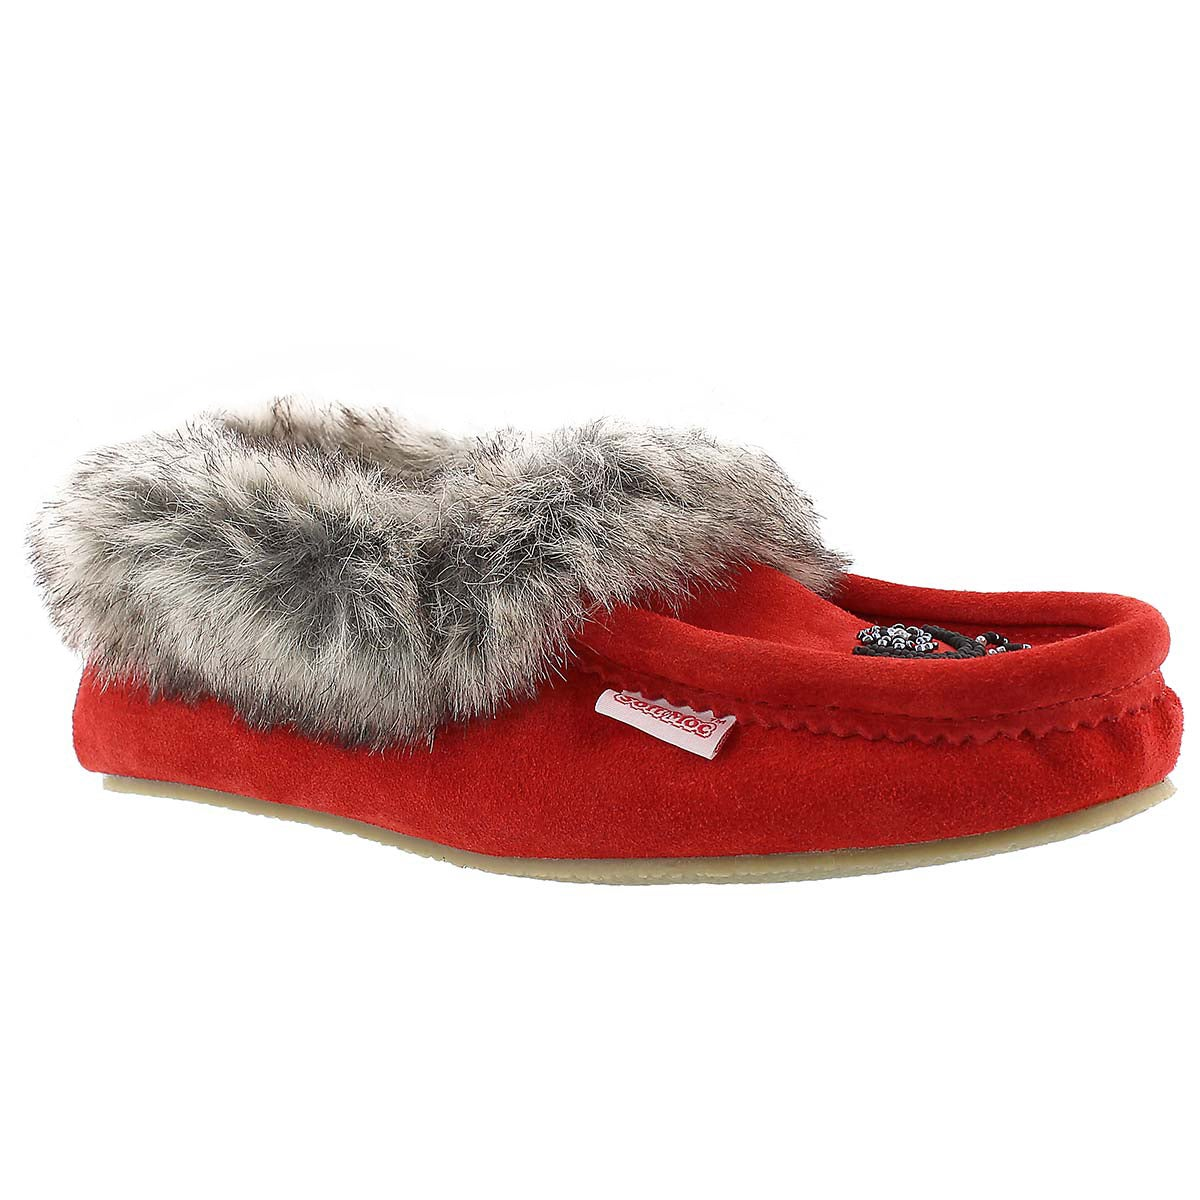 Women's CUTE FAUX ME red crepe sole moccasins